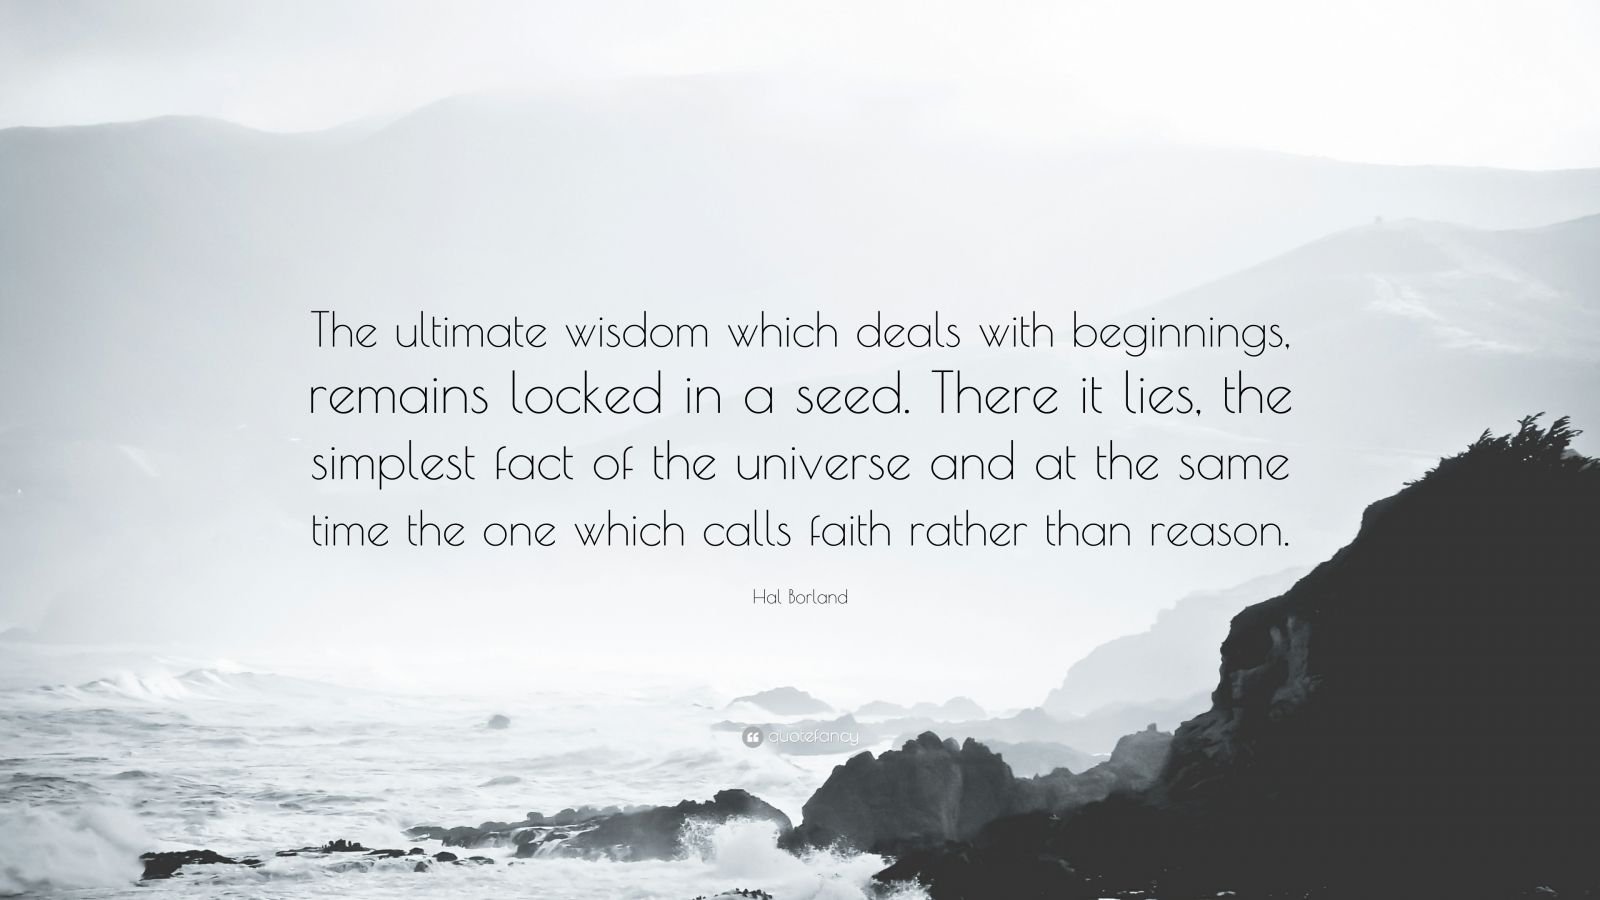 """Hal Borland Quote: """"The ultimate wisdom which deals with beginnings, remains locked in a seed. There it lies, the simplest fact of the universe and at the same time the one which calls faith rather than reason."""""""